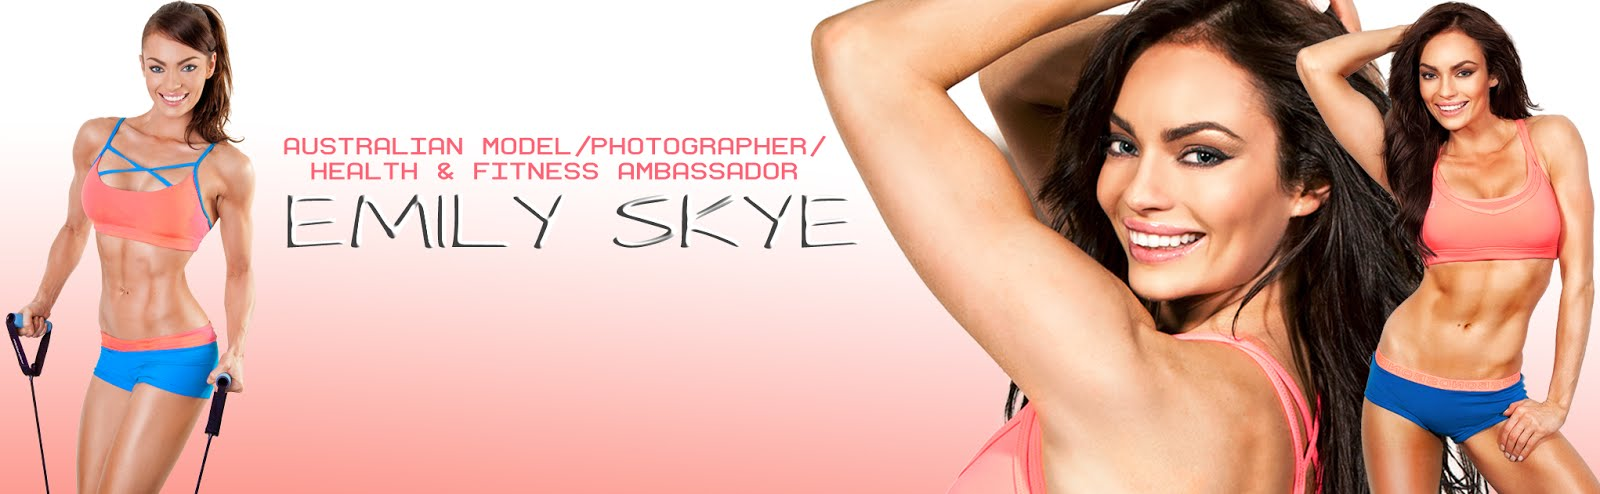 Emily Skye - Australian model, Photographer & Health & Fitness Ambassador